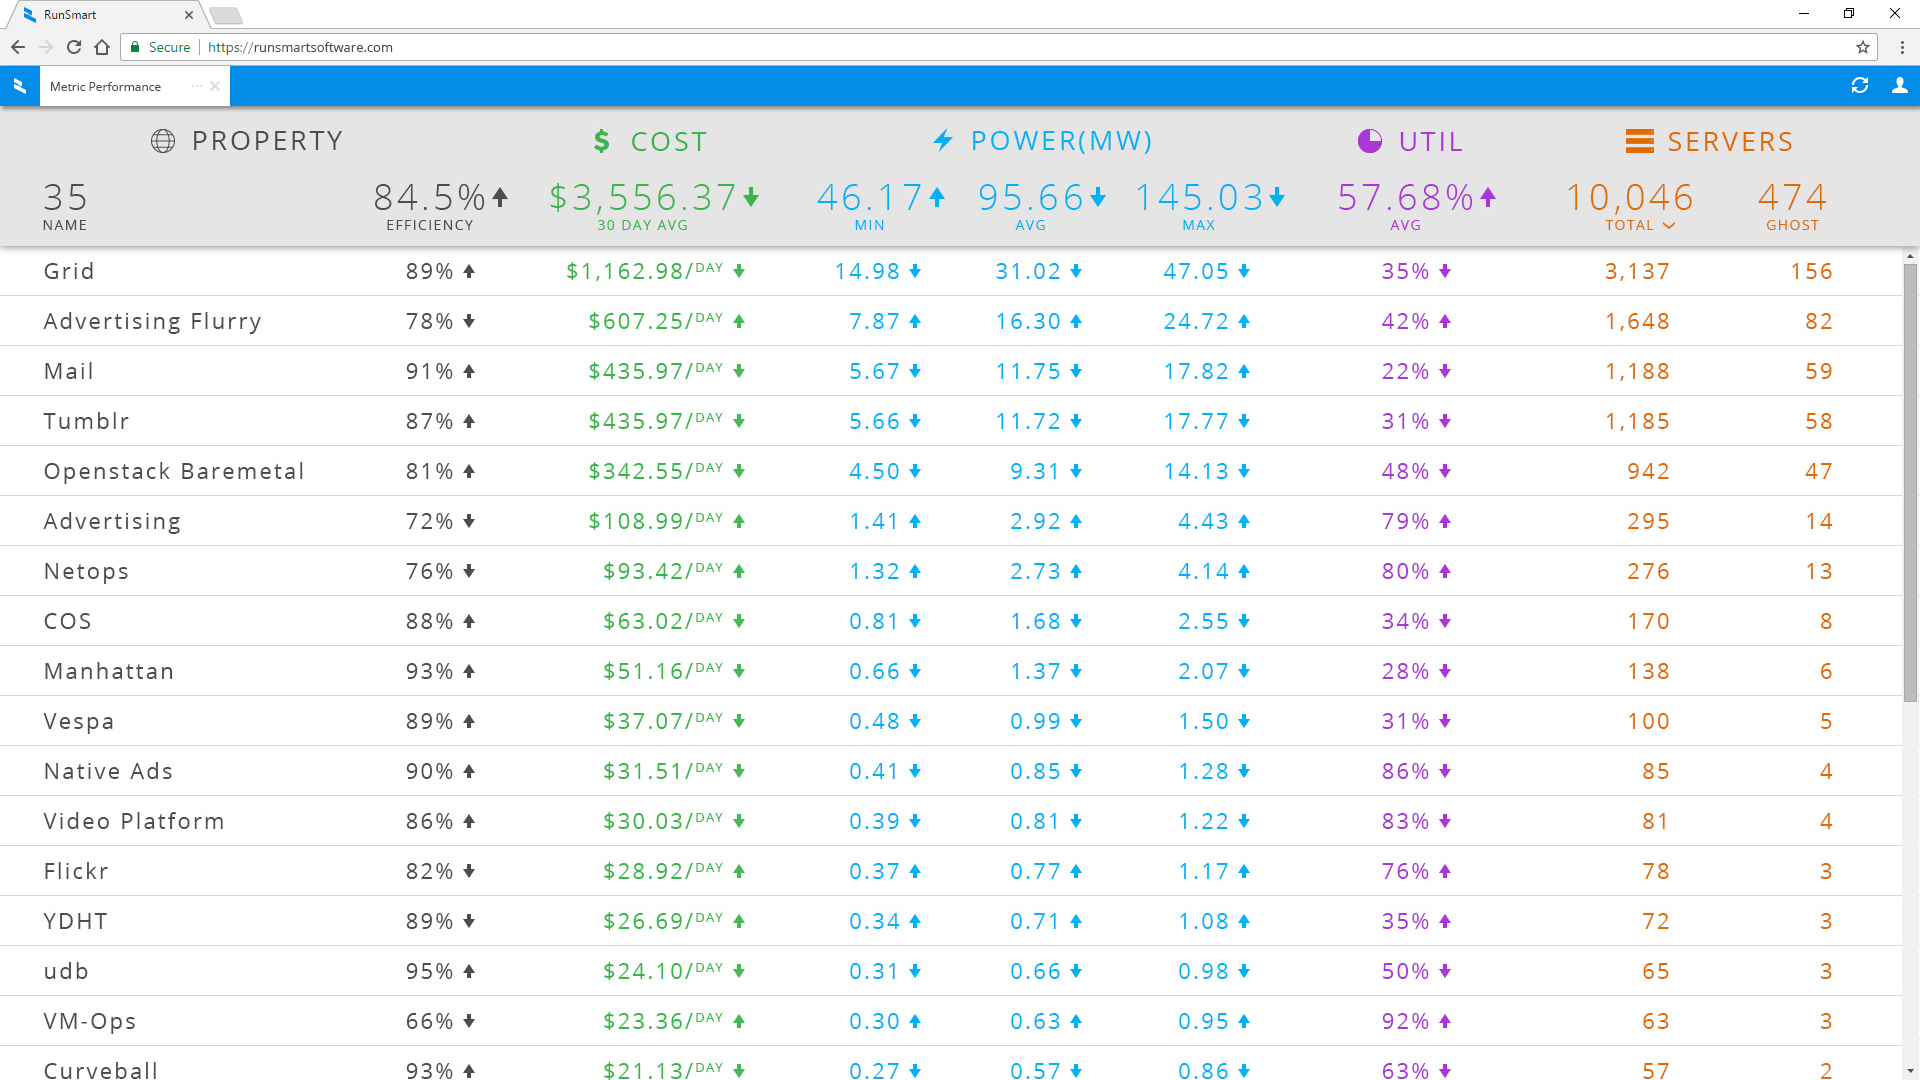 Server Business Grouping Performance Dashboard